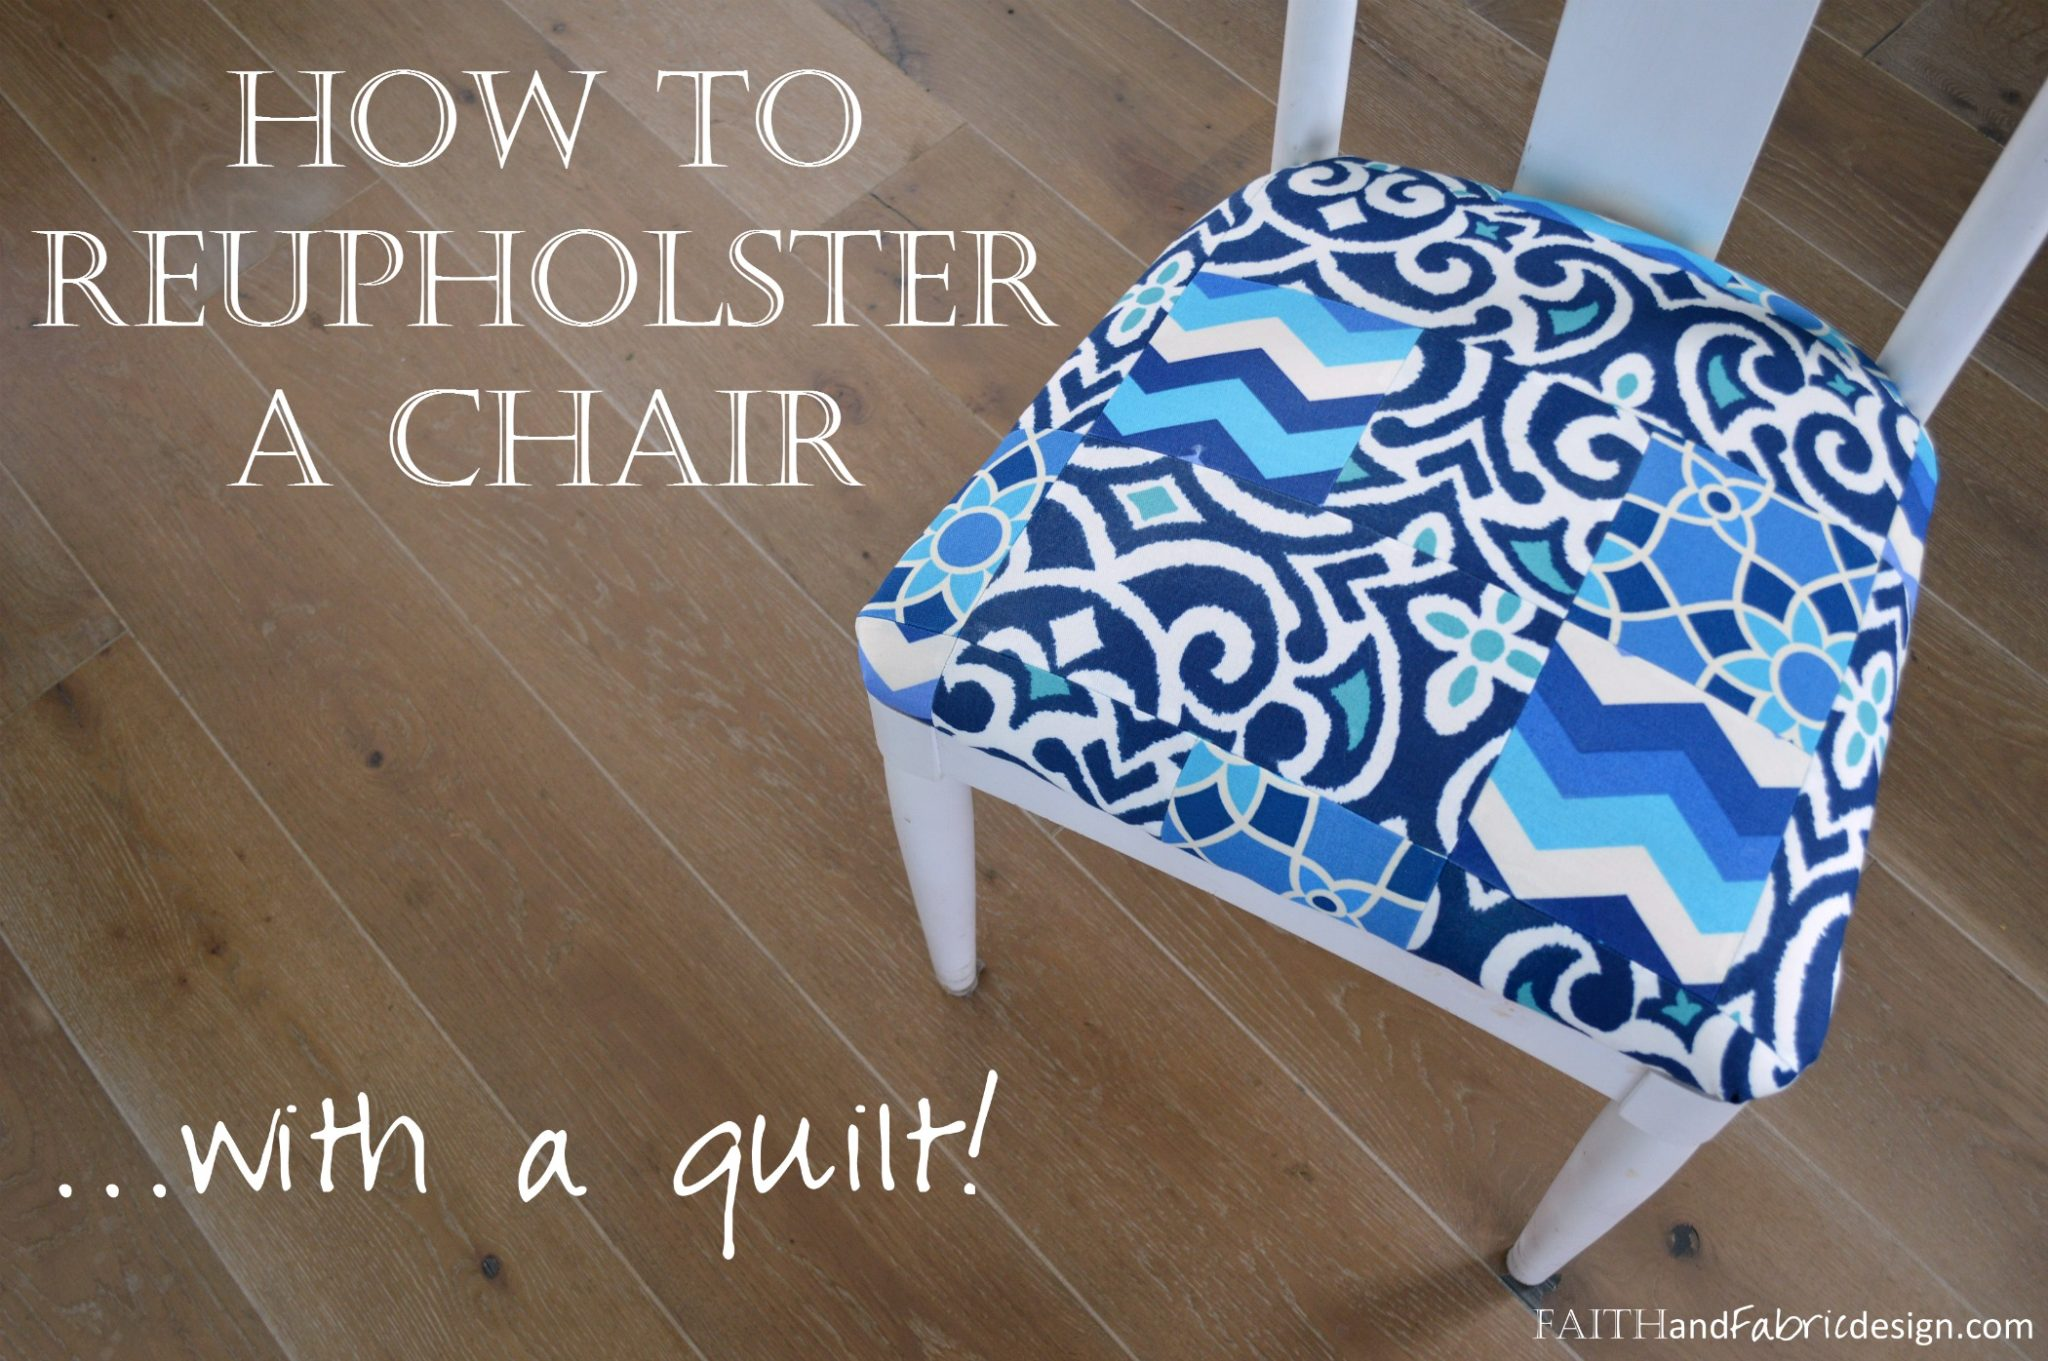 How To Reupholster A Chair With A Quilt